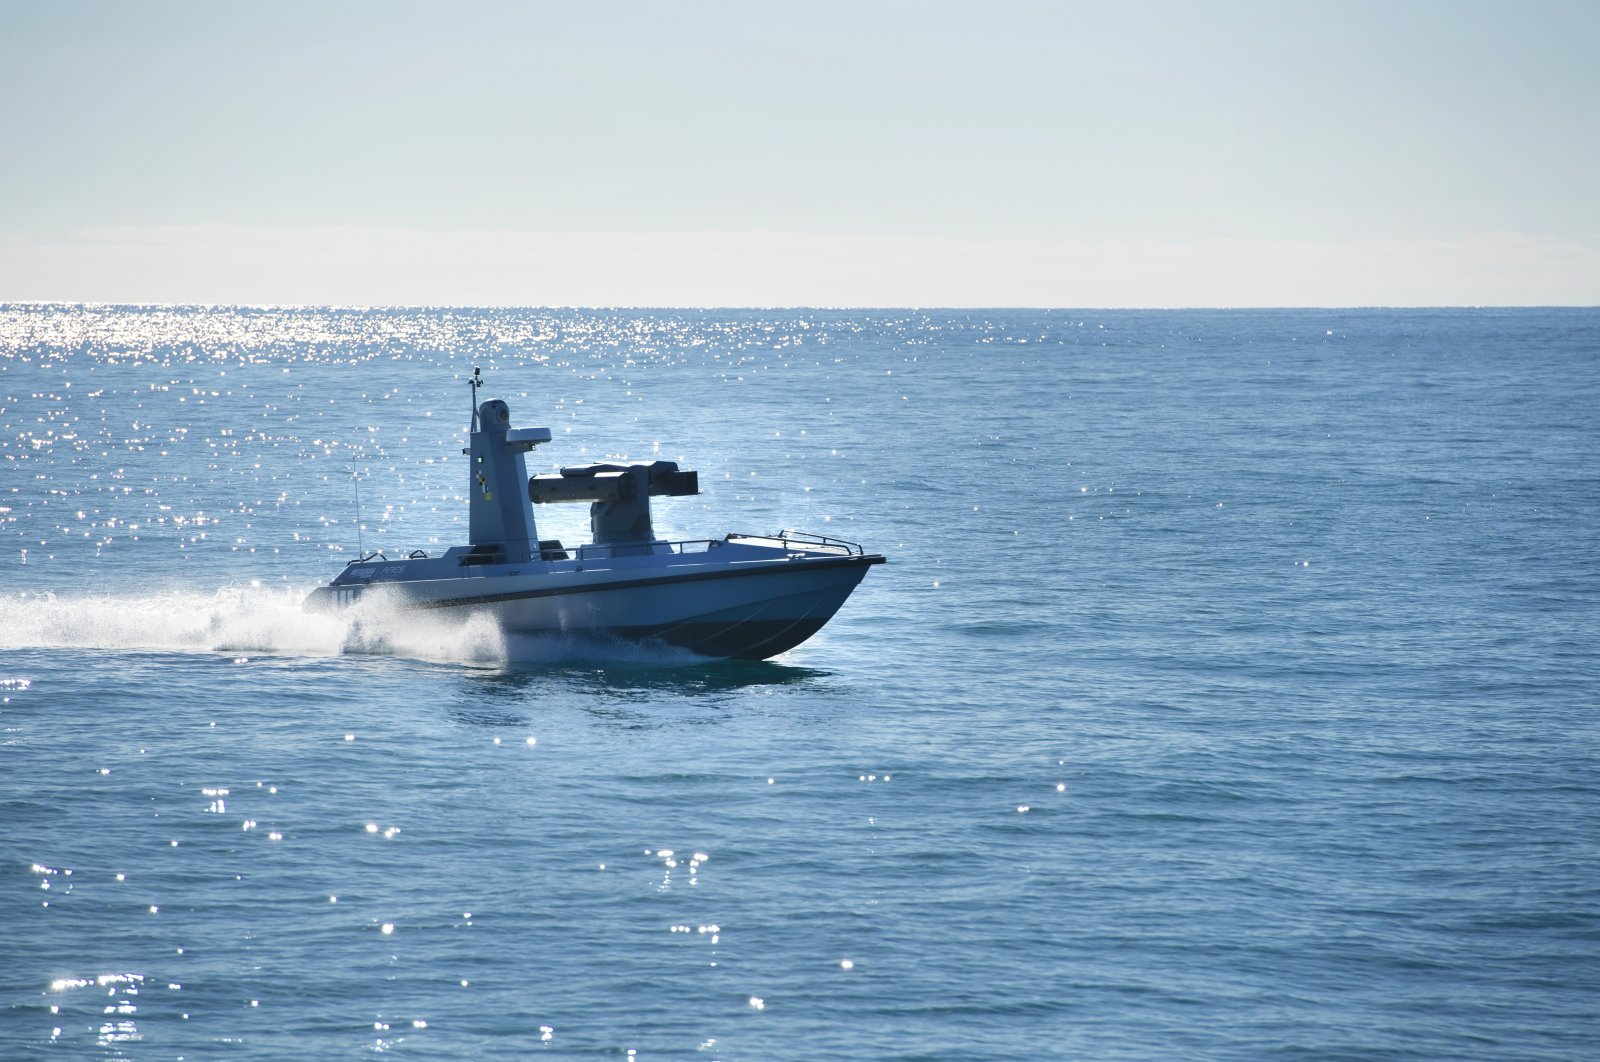 Turkey's first unmanned surface vessel, first of the ULAQ series, launched at sea, Feb. 12, 2021. (Courtesy of Meteksan Defense)